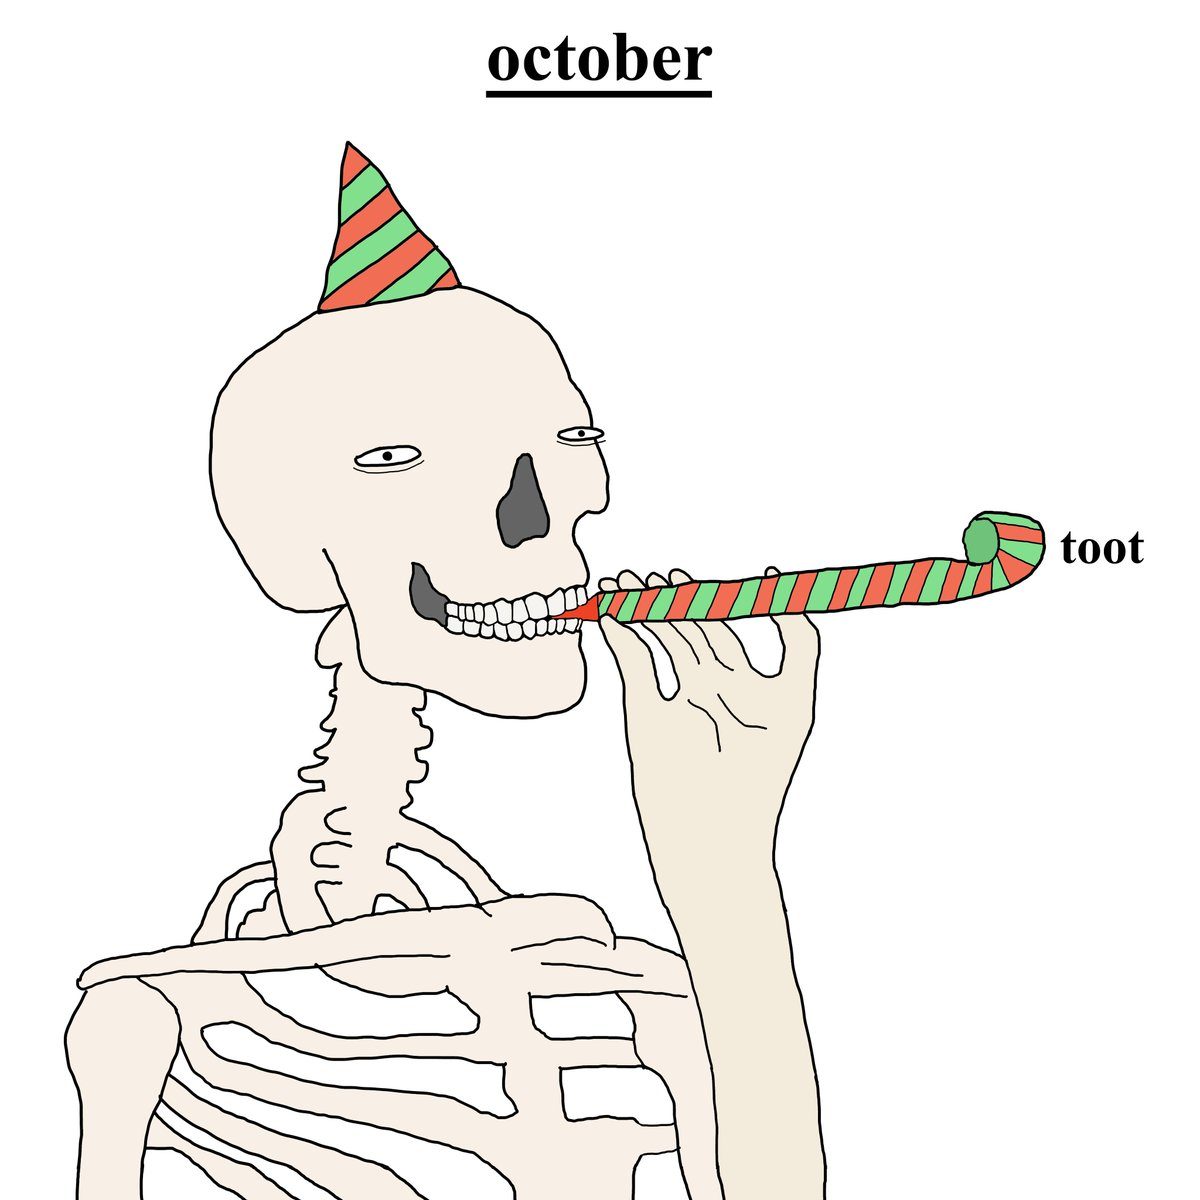 lets get spooky xox https://t.co/GpeQH7YrPT